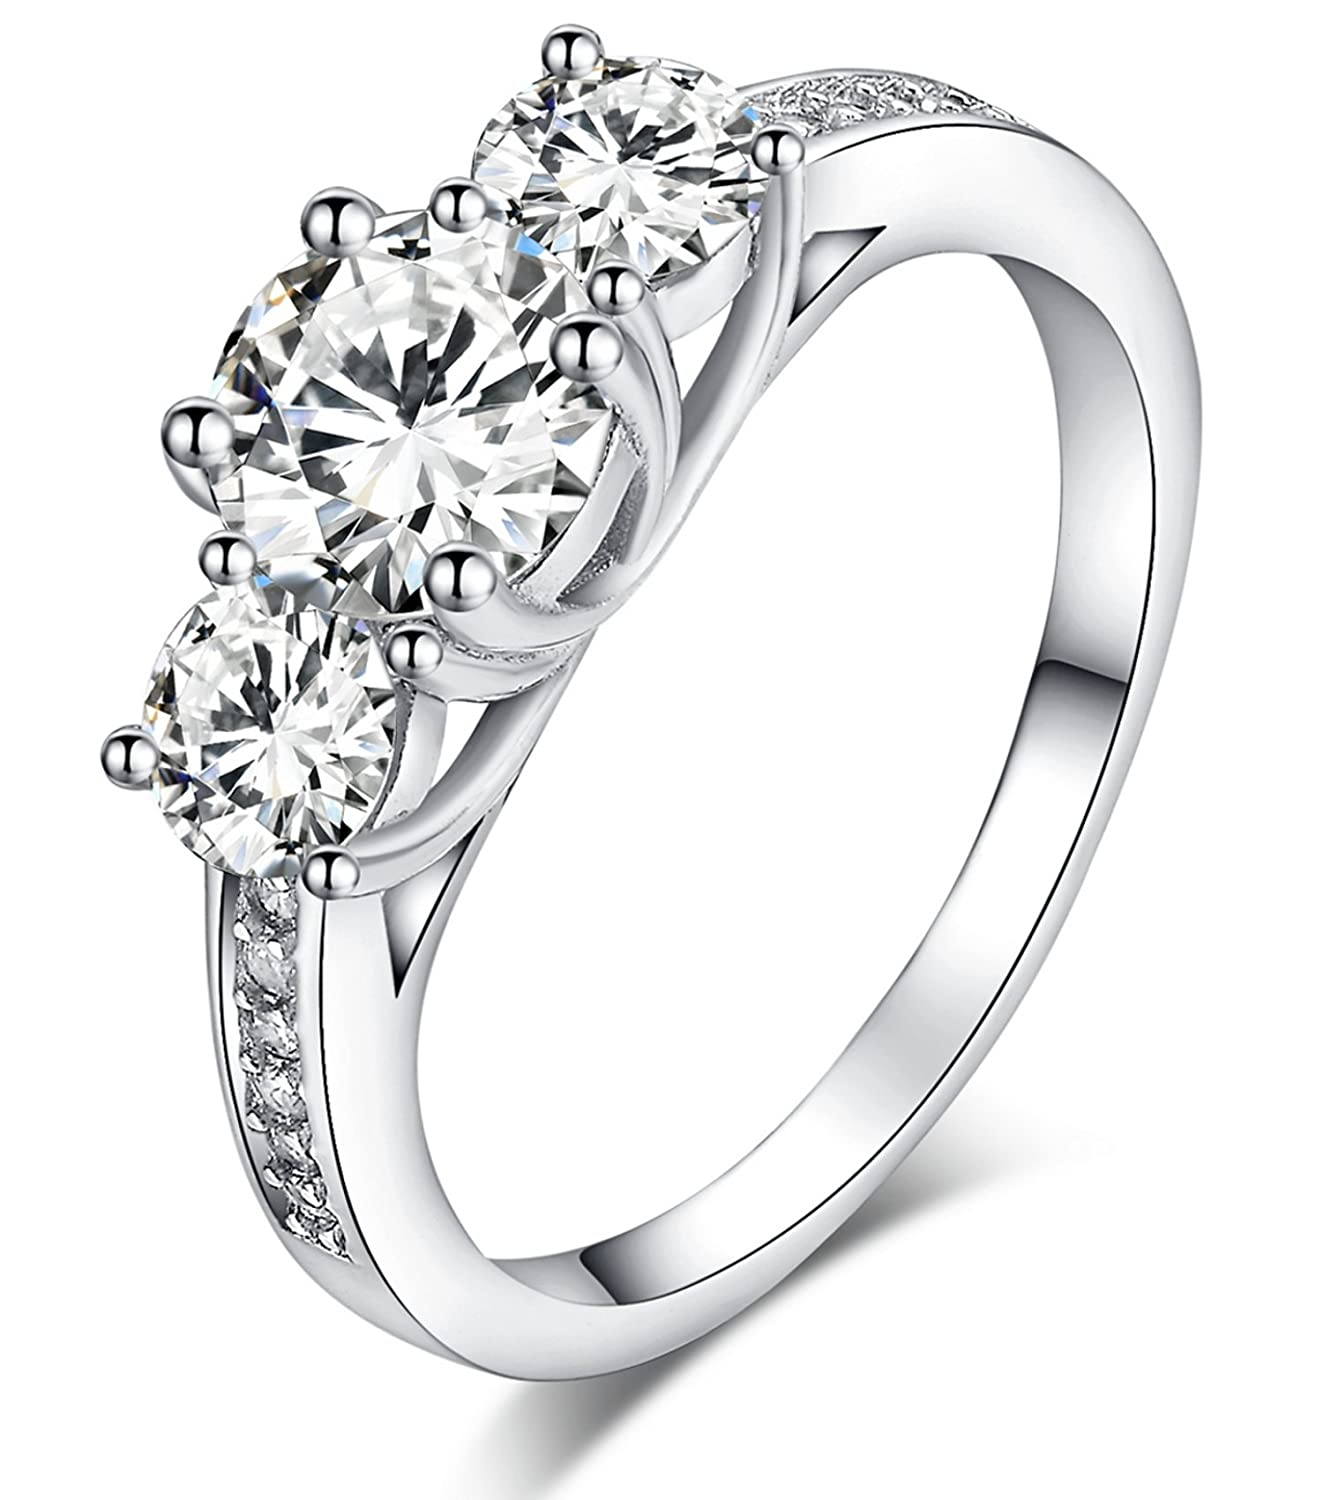 ring rings engagement diamond bands gold wedding beaverbrooks large jewellery white context